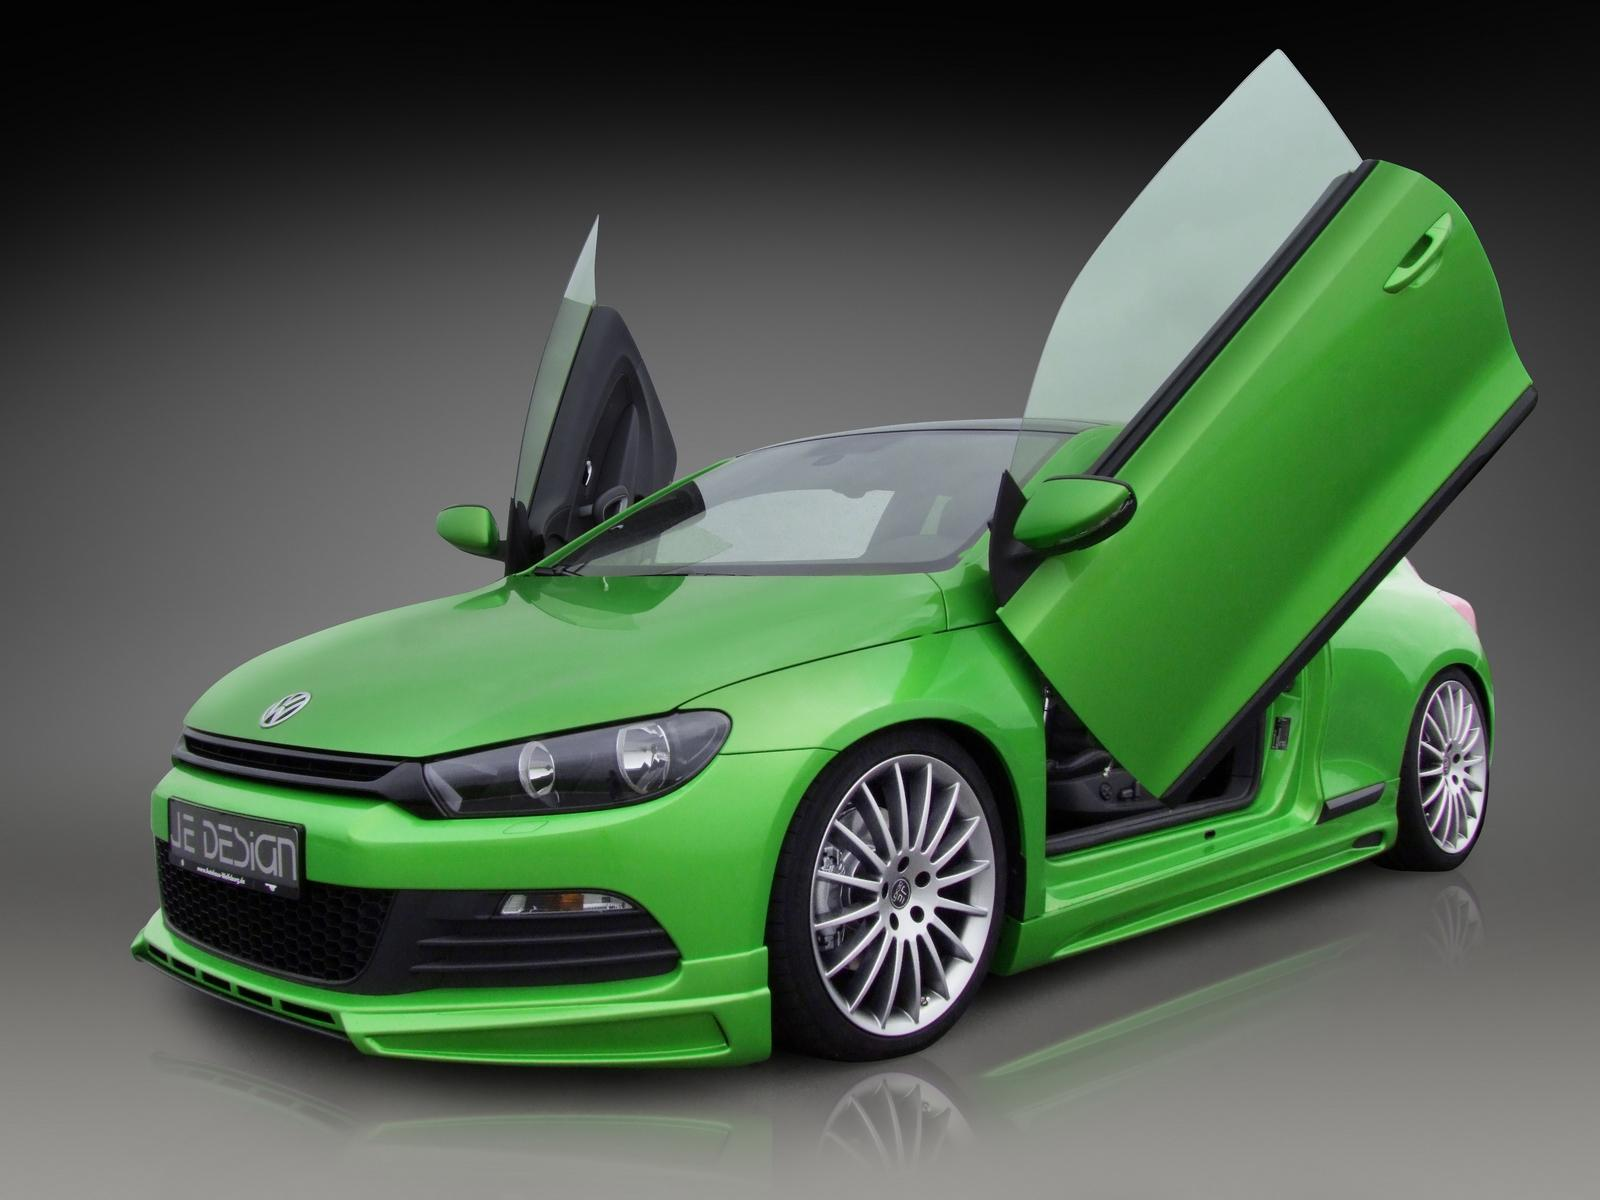 free cars hd wallpapers volkswagen scirocco tuning car hd. Black Bedroom Furniture Sets. Home Design Ideas